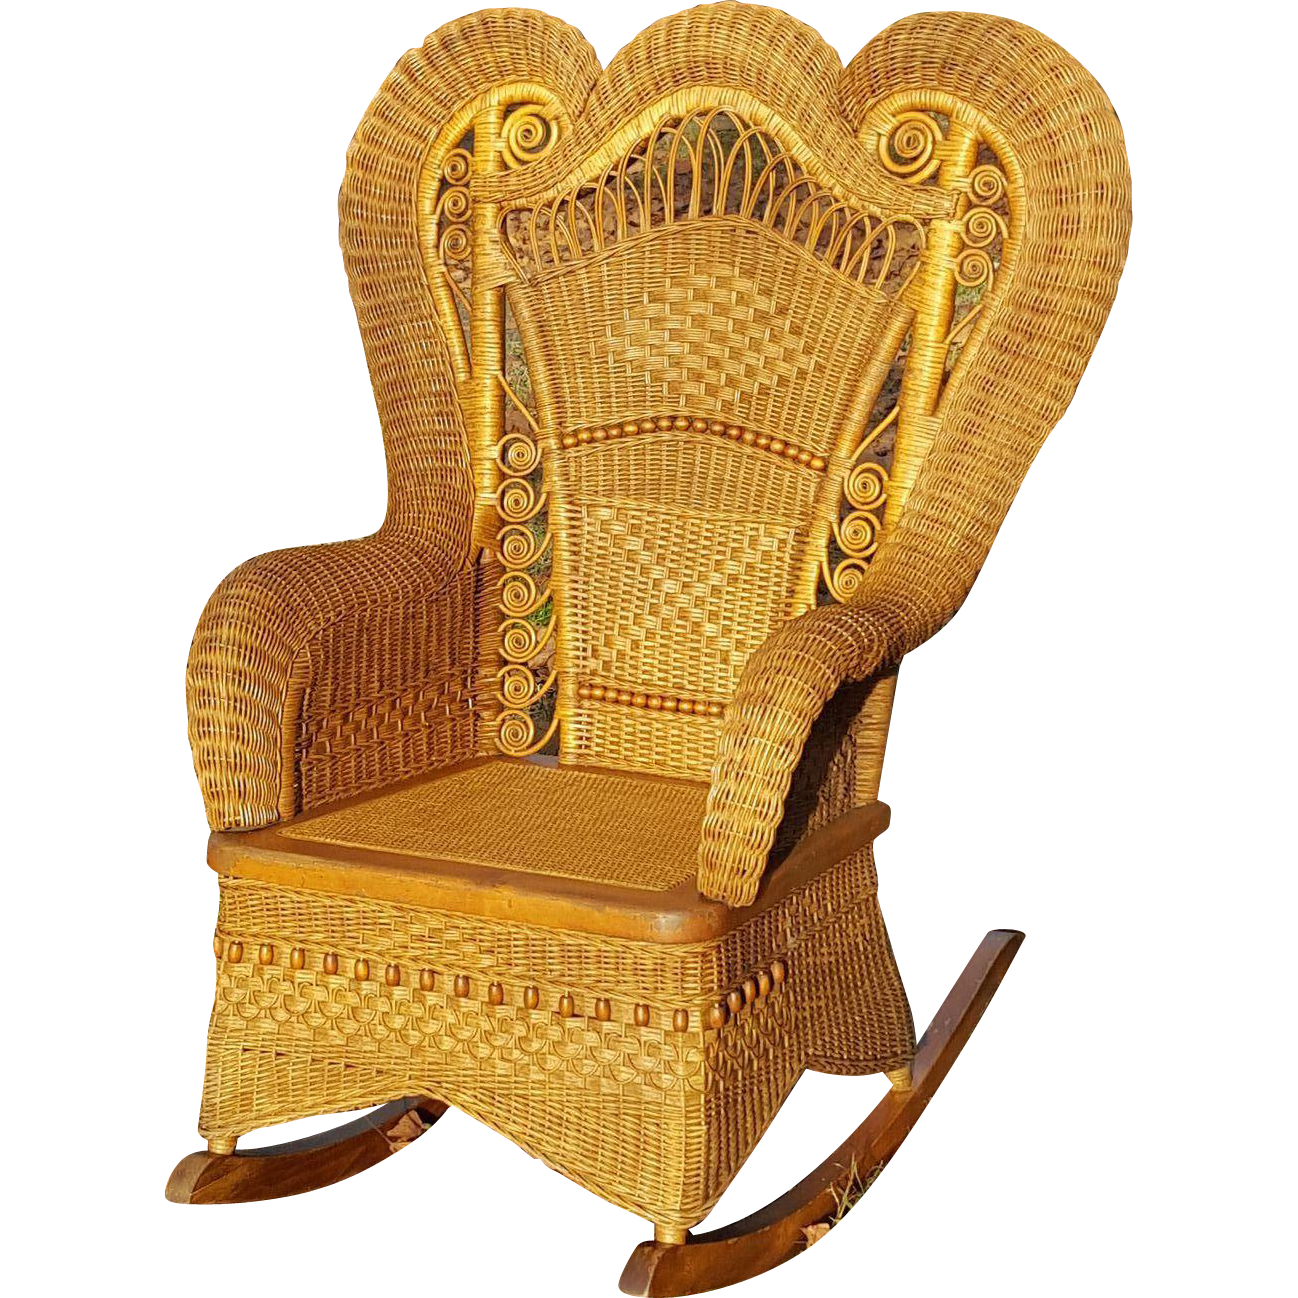 Peachy Antique Large Ornate Natural Victorian Wicker Rocker Circa Dailytribune Chair Design For Home Dailytribuneorg